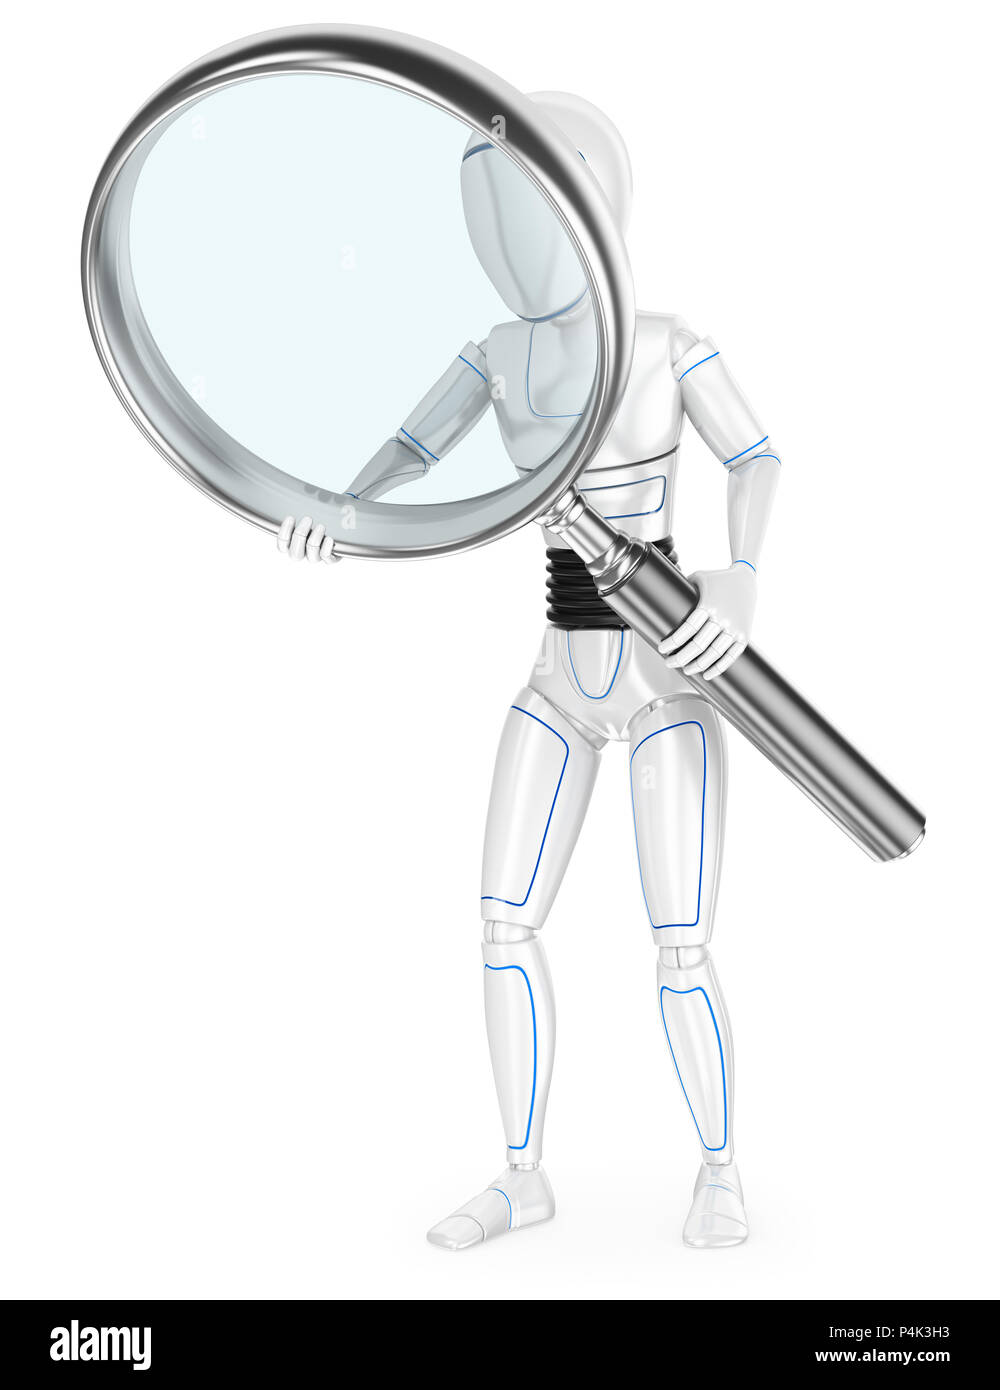 3d futuristic android illustration. Humanoid robot with a huge magnifying glass. Isolated white background. - Stock Image